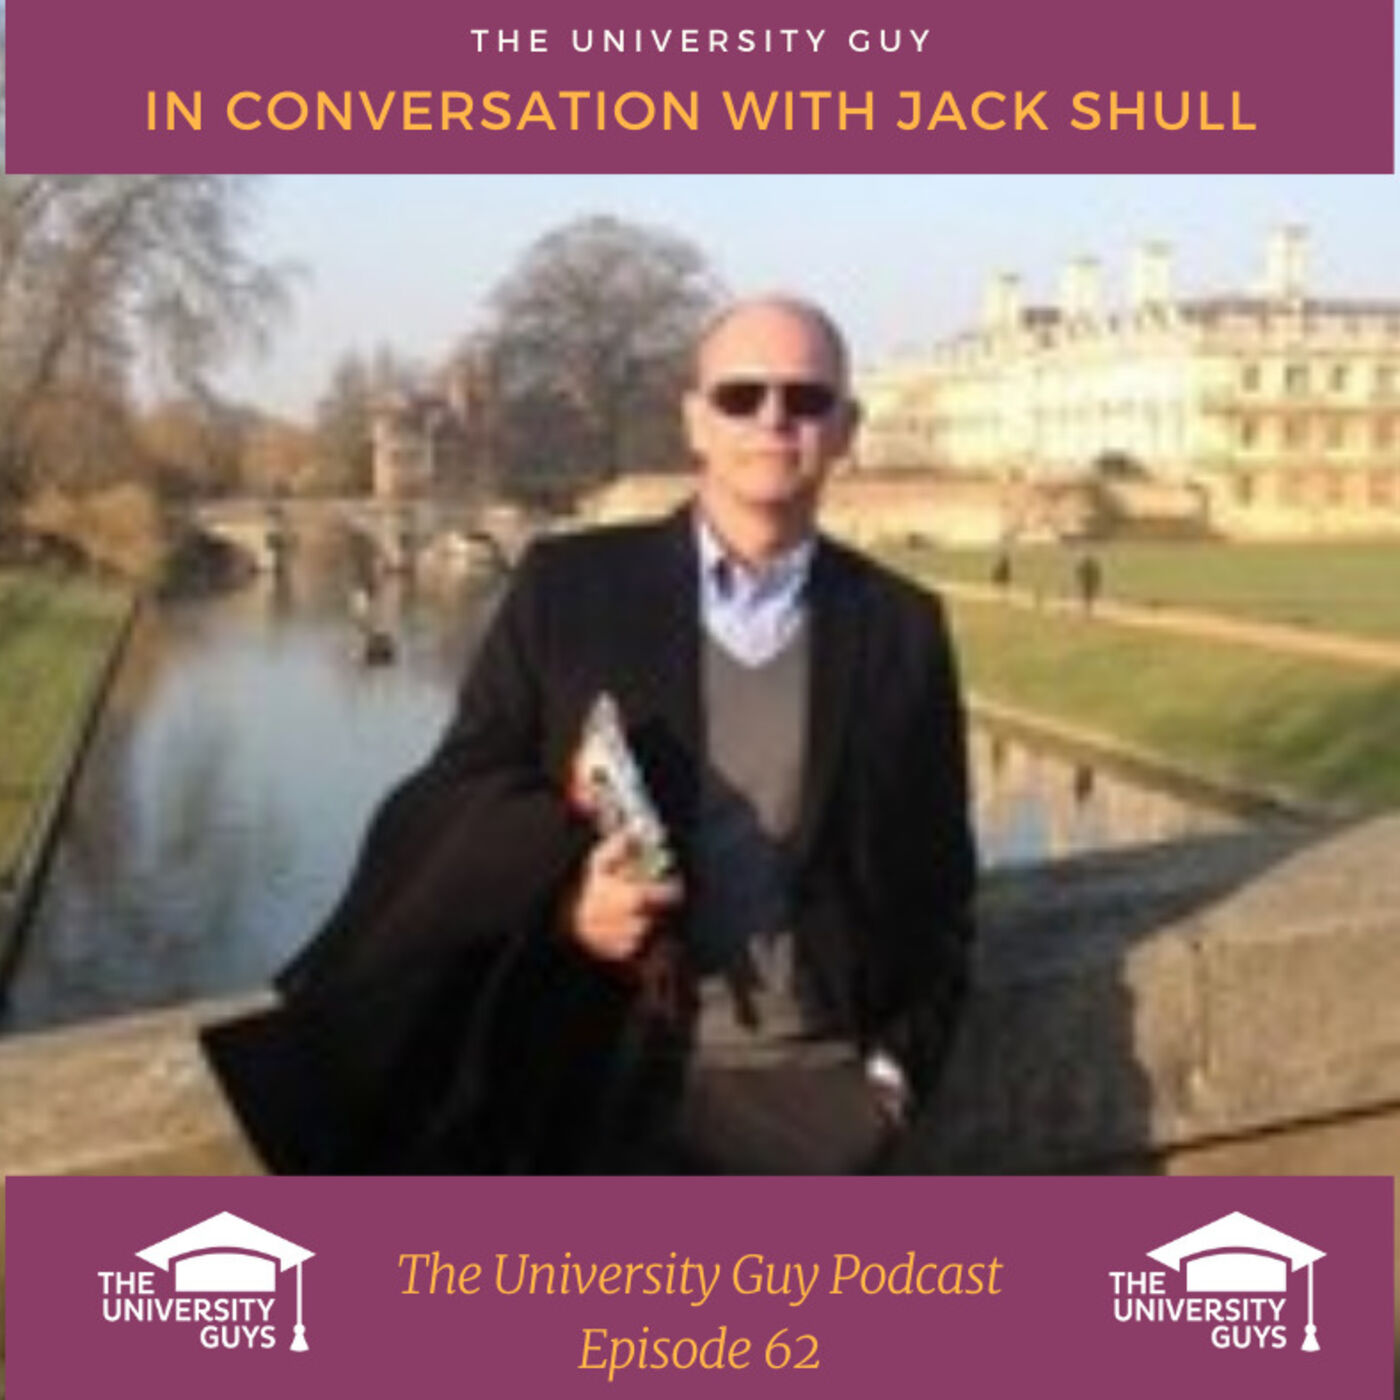 Episode 62: In conversation with Jack Shull